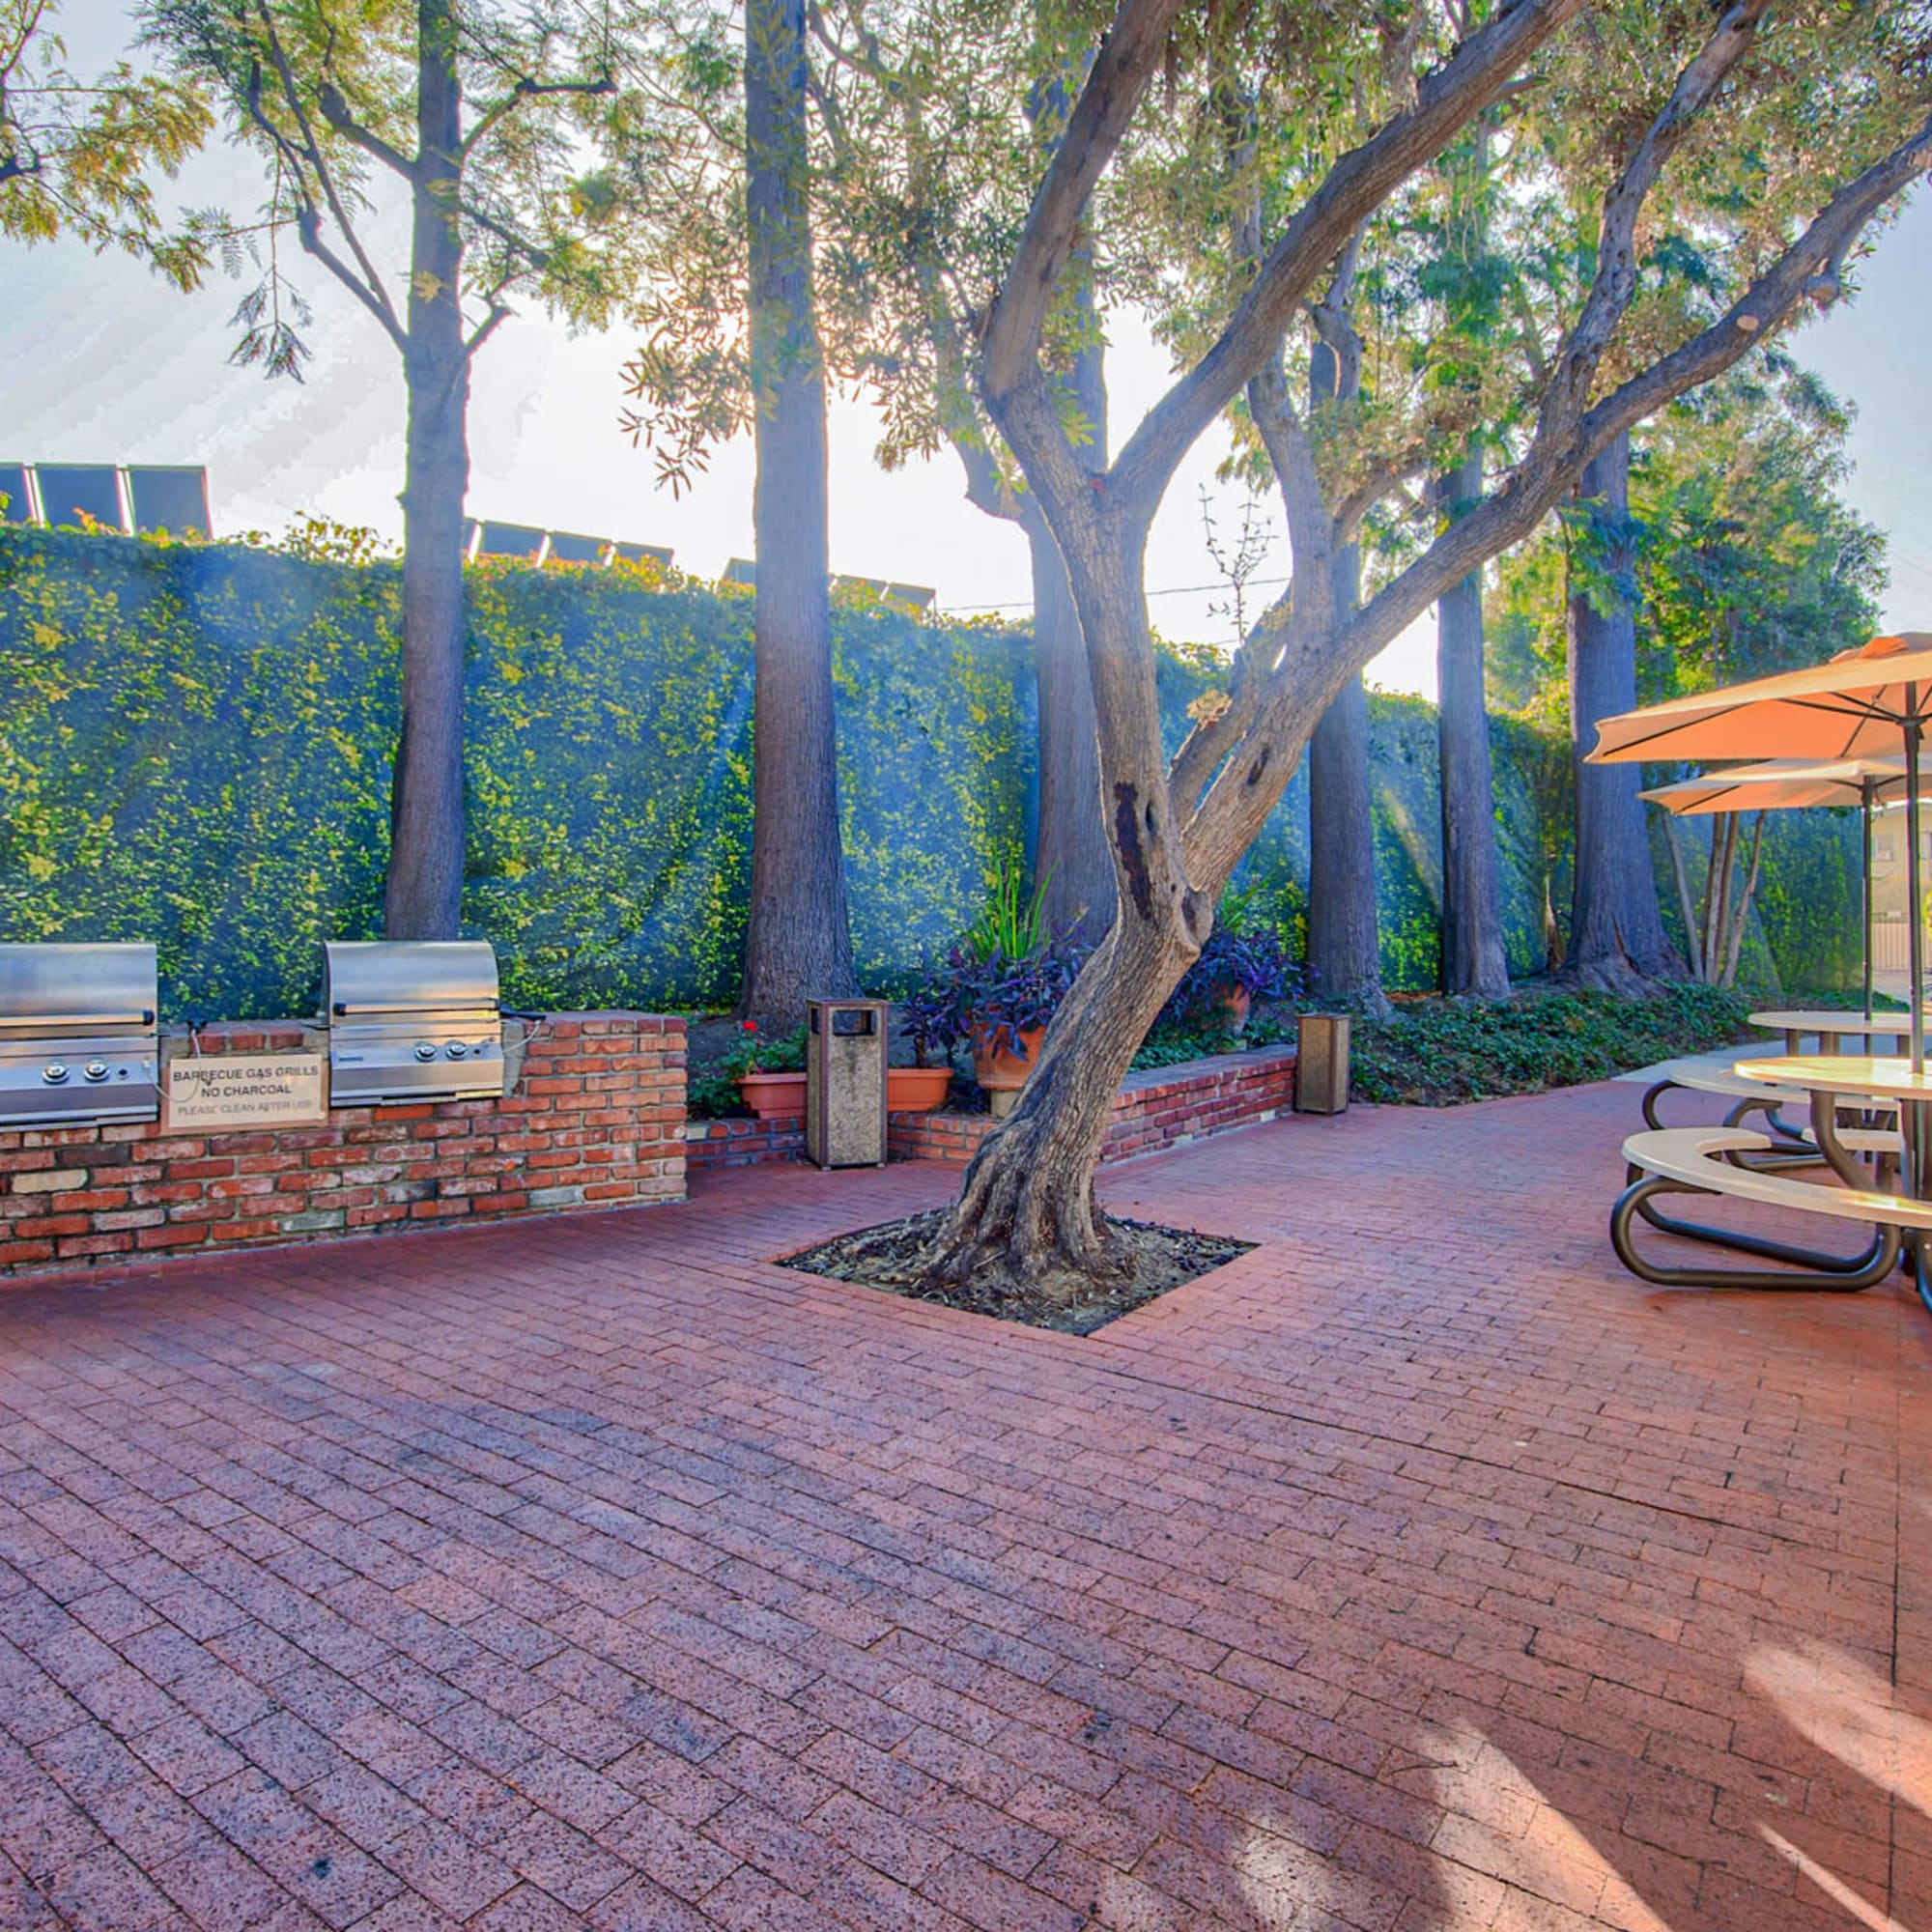 Barbecue area with a brick courtyard, gas grills and mature trees at Villa Vicente in Los Angeles, California